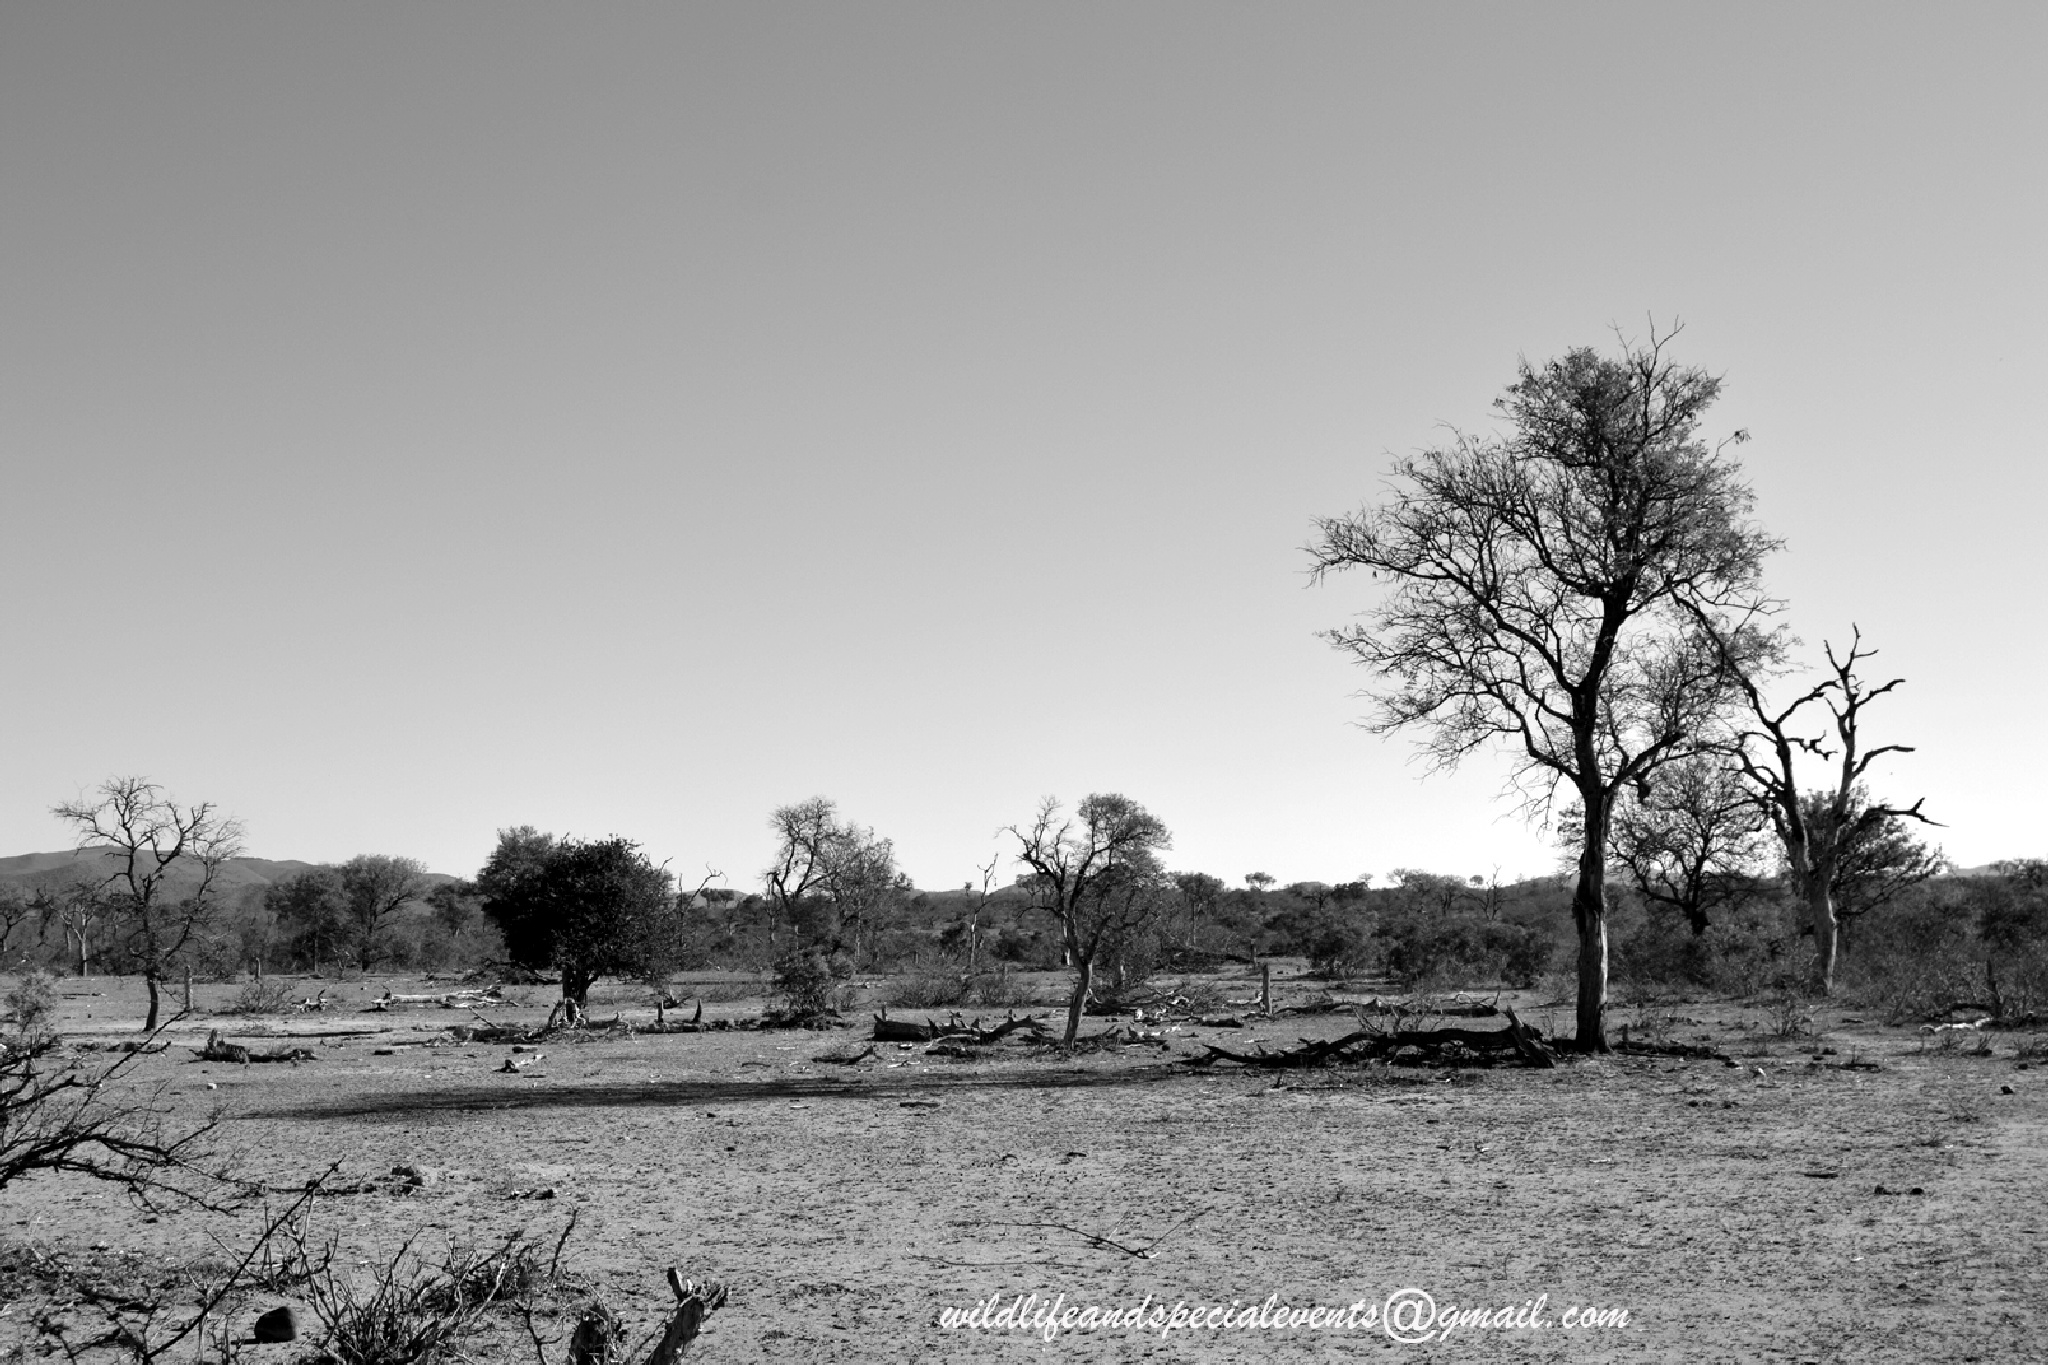 Africa's Drought in Black and White by oosie